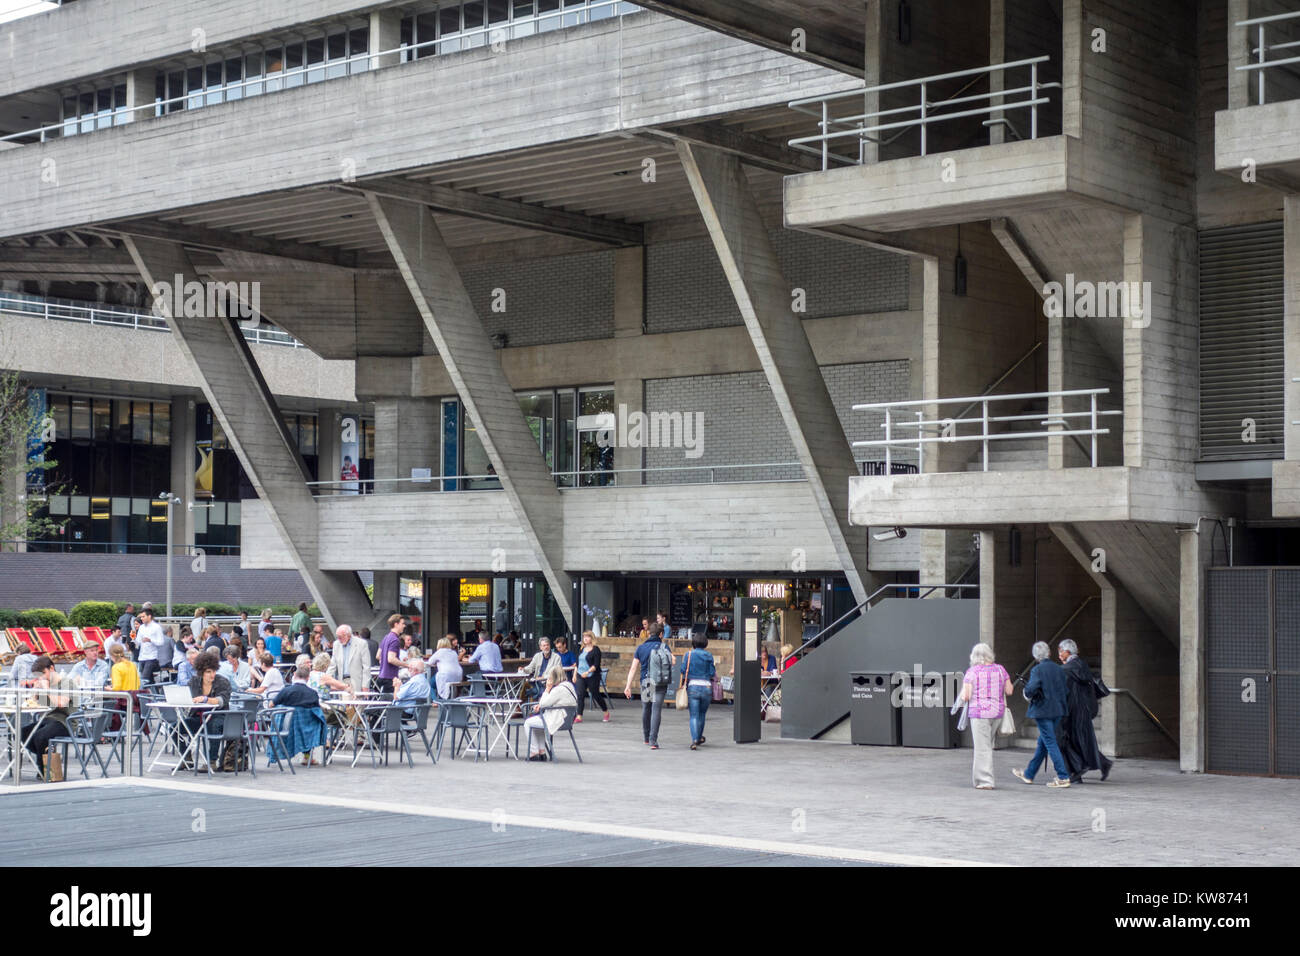 Les gens assis à l'extérieur de l'architecture brutaliste du Théâtre National le London's Photo Stock